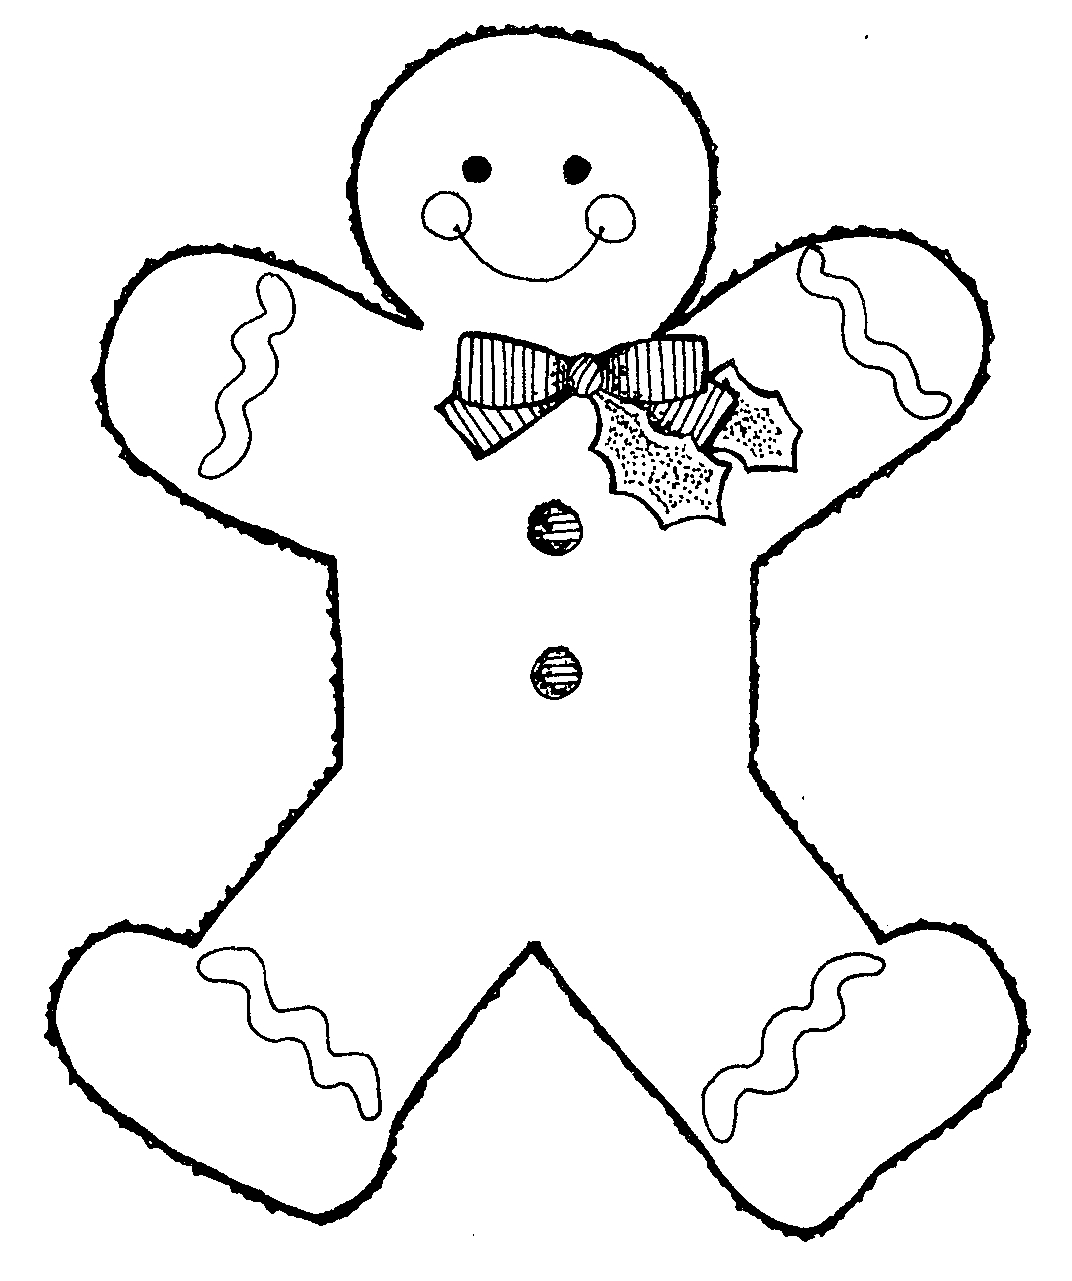 kids coloring pages man - photo#30